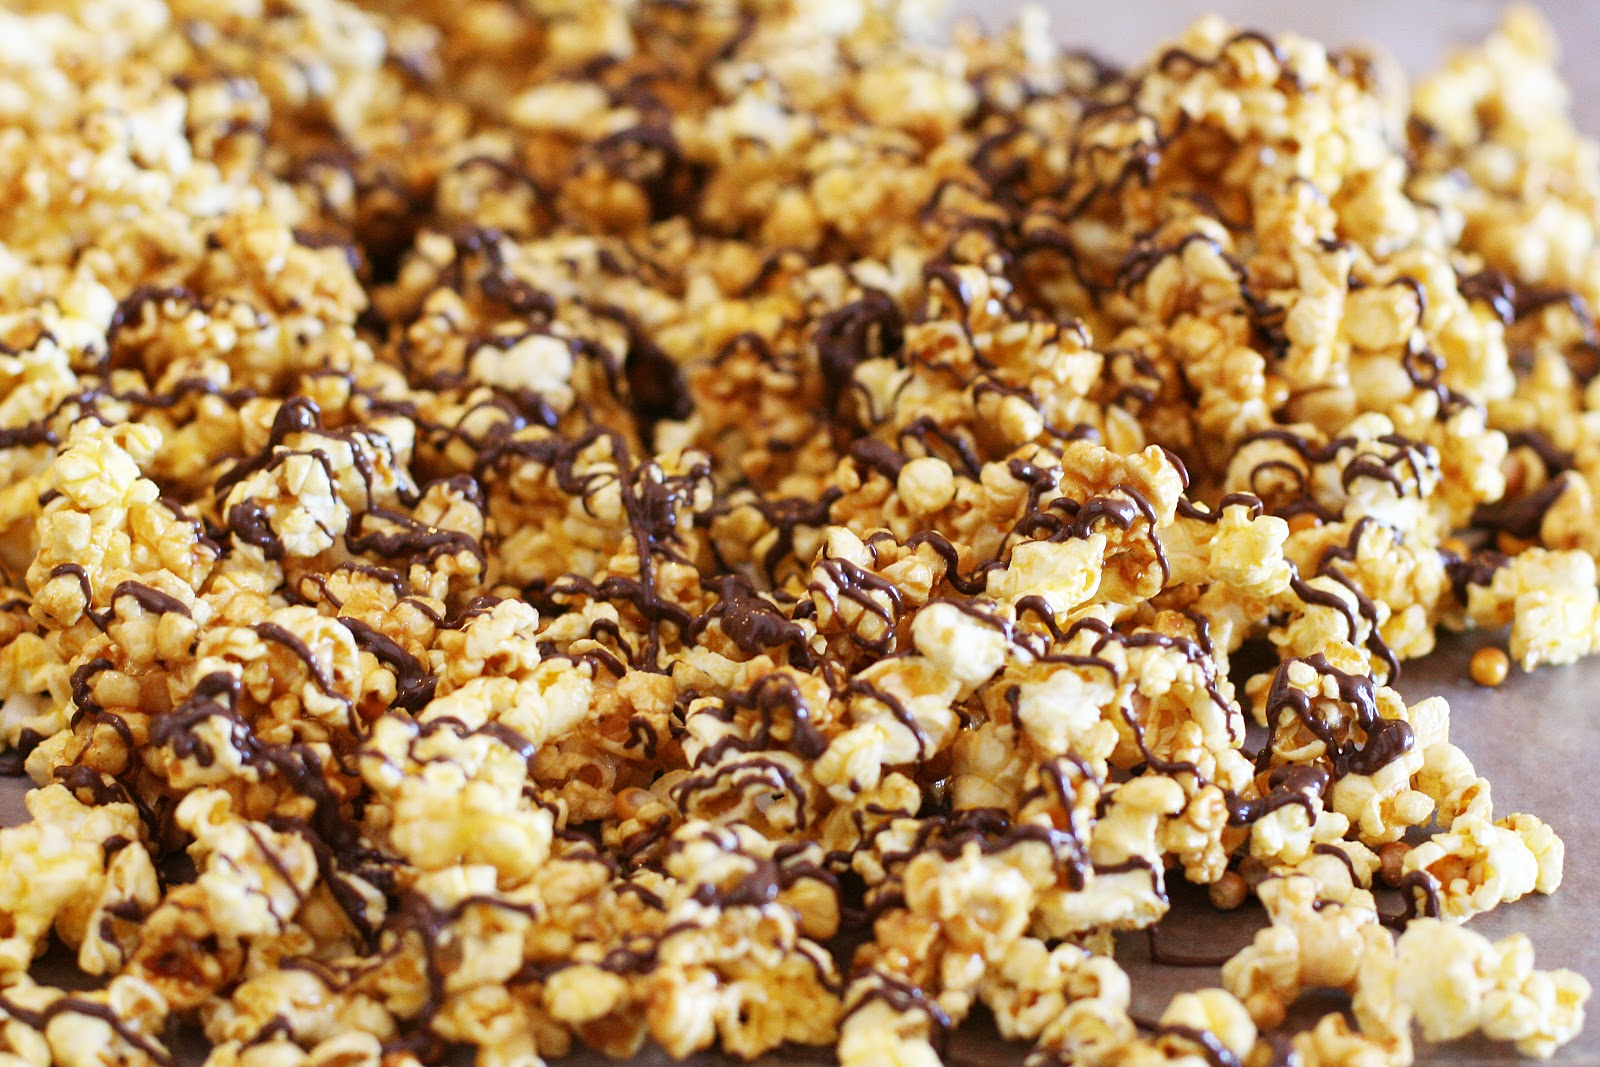 chocolate-drizzled-caramel-popcorn